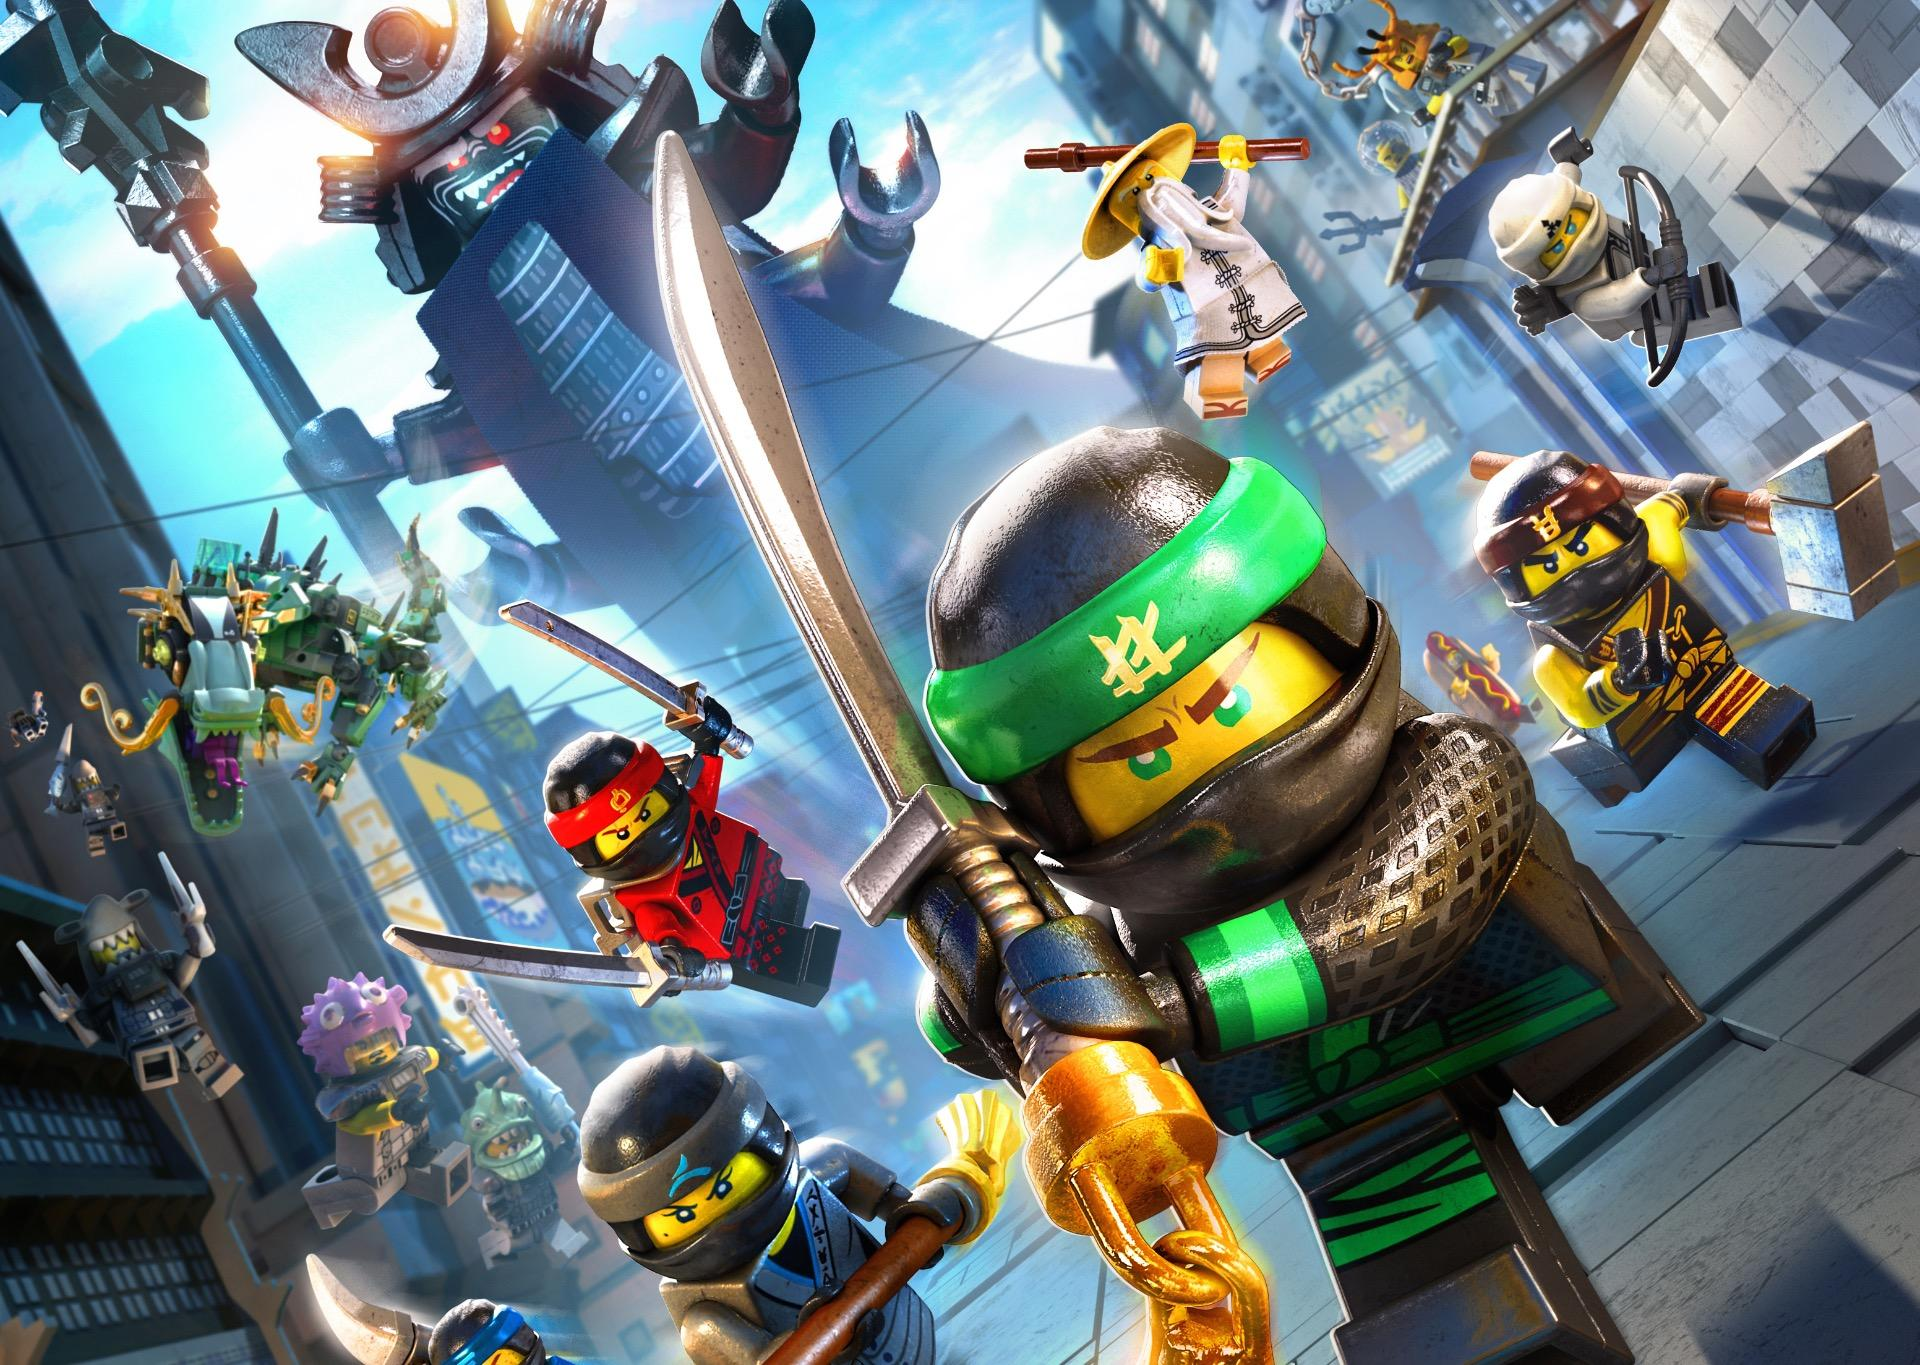 Lego Ninjago Movie Video Game The Complete Cheat Codes List Gameranx Sony World Ps4 Series Of Games Are Some Last To Keep Long Tradition Alive Continues Trend